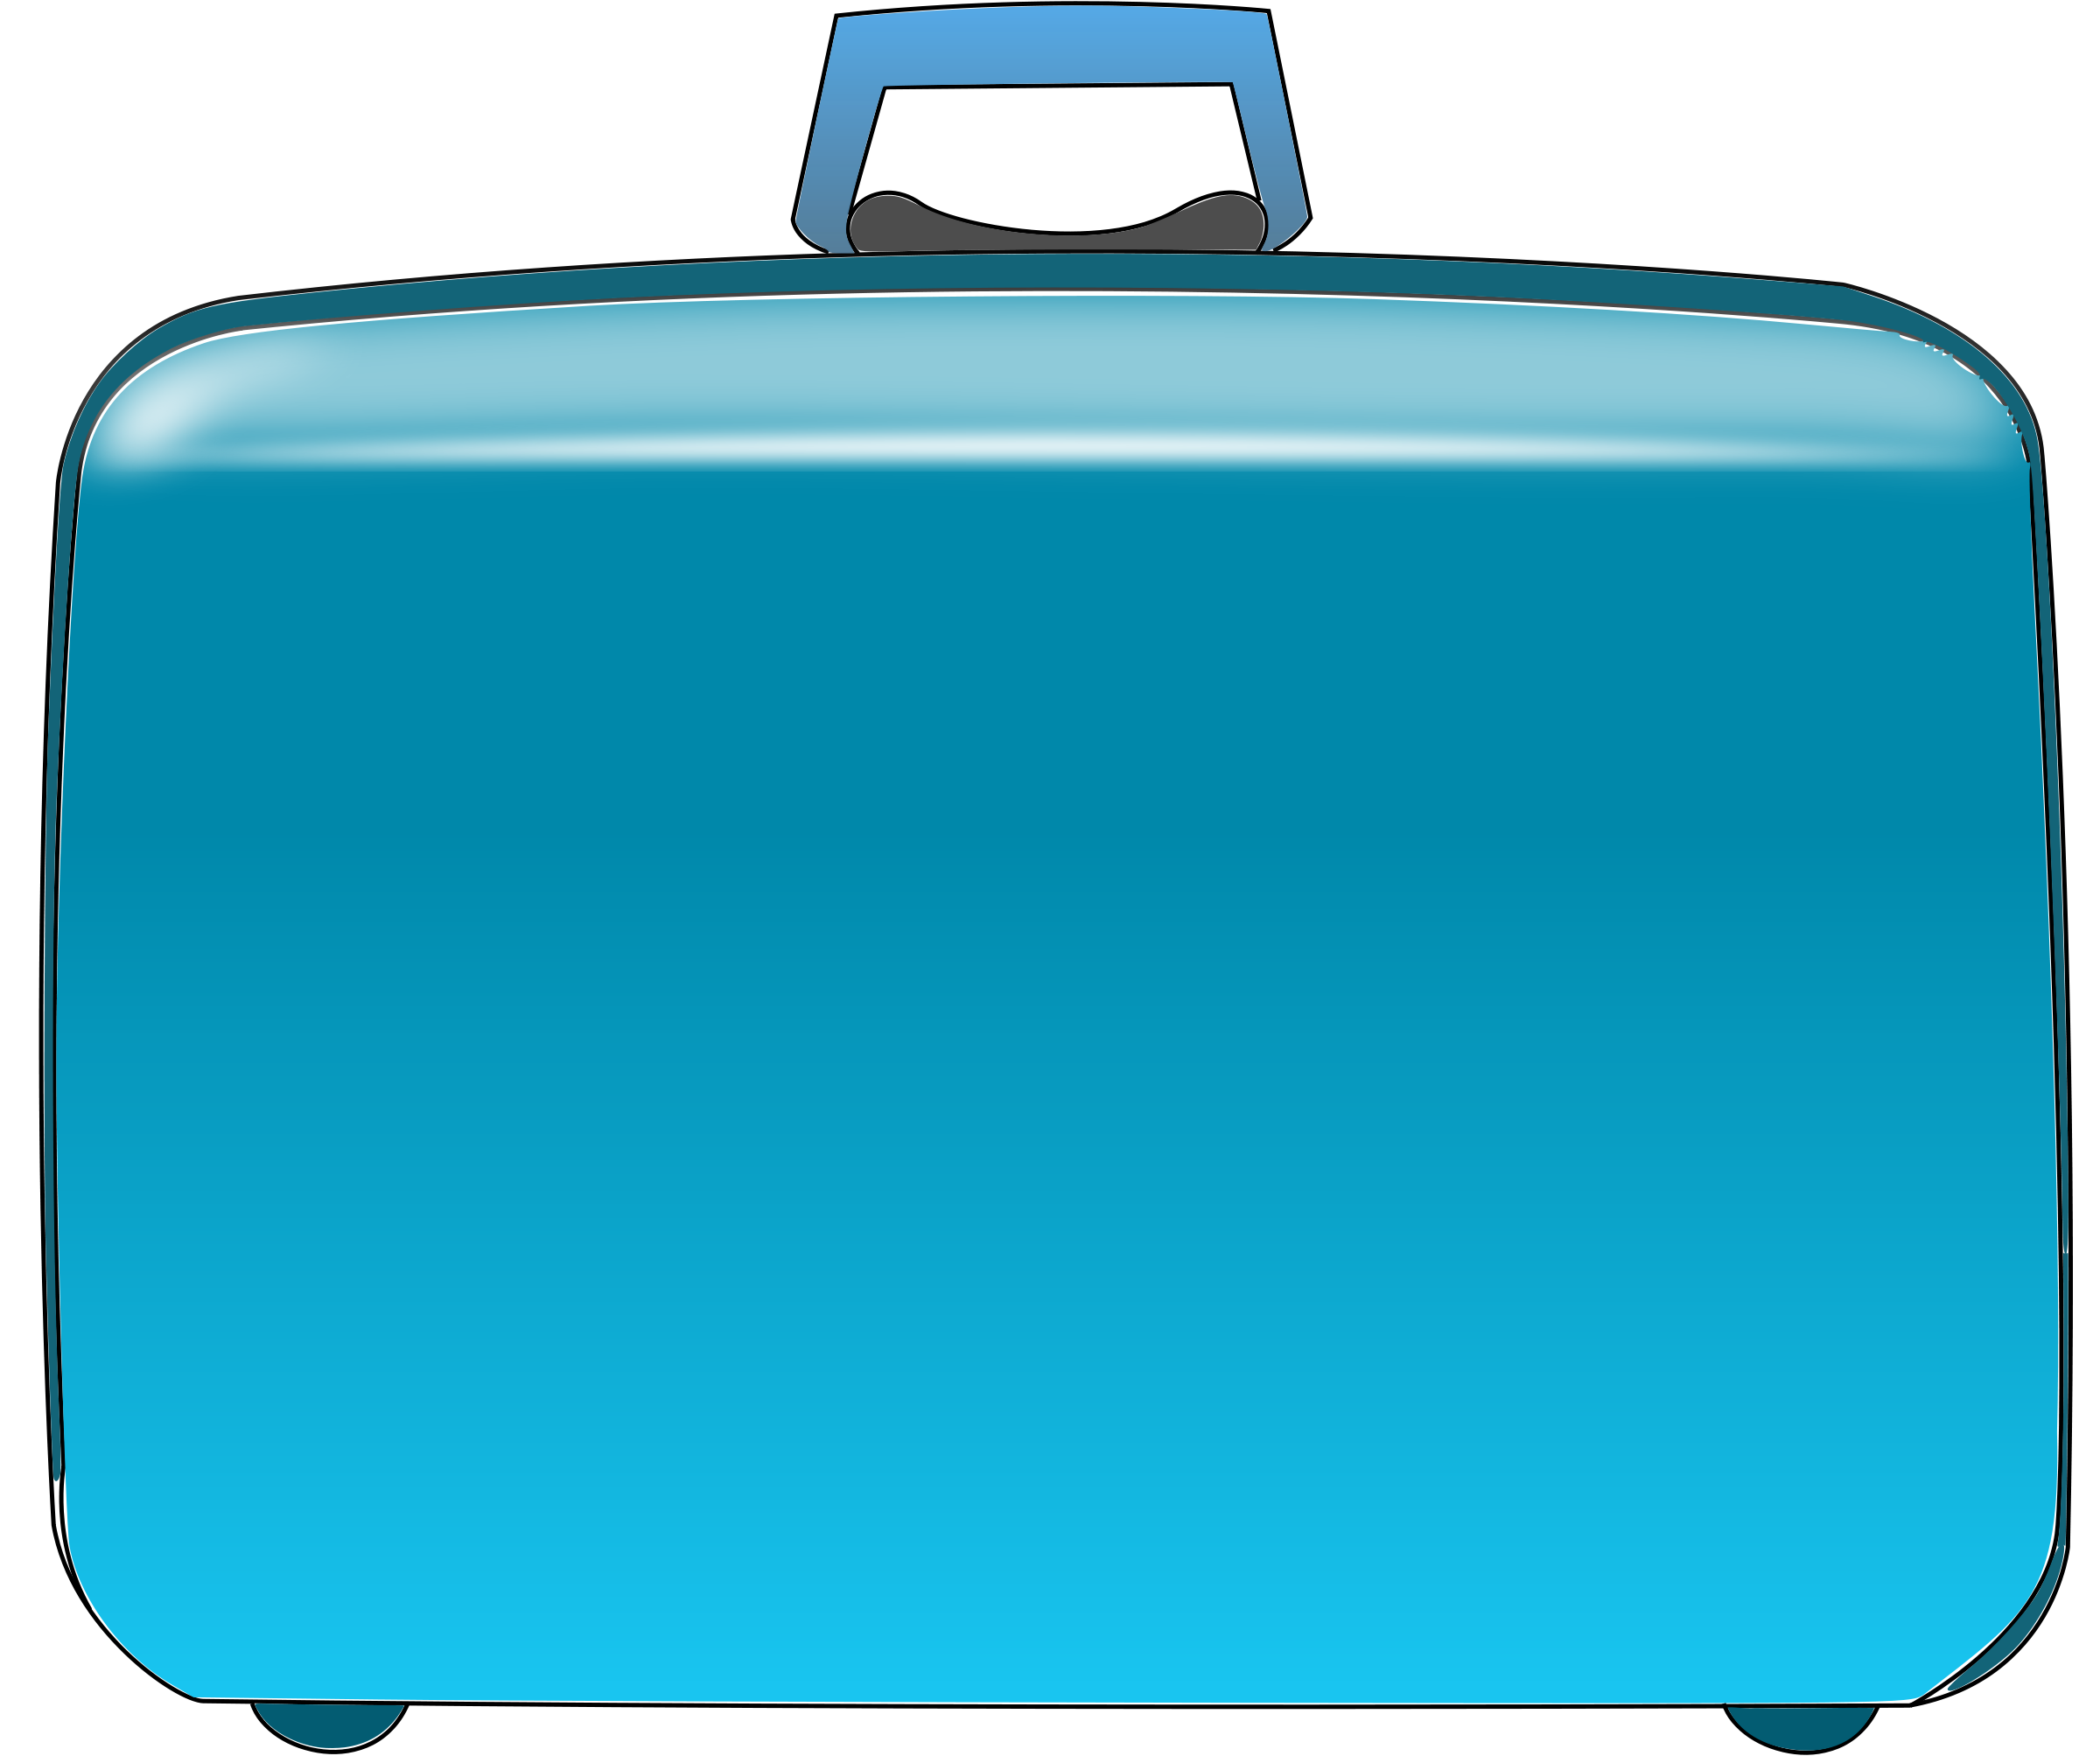 travel suitcase clip art - Clip Art Suitcase